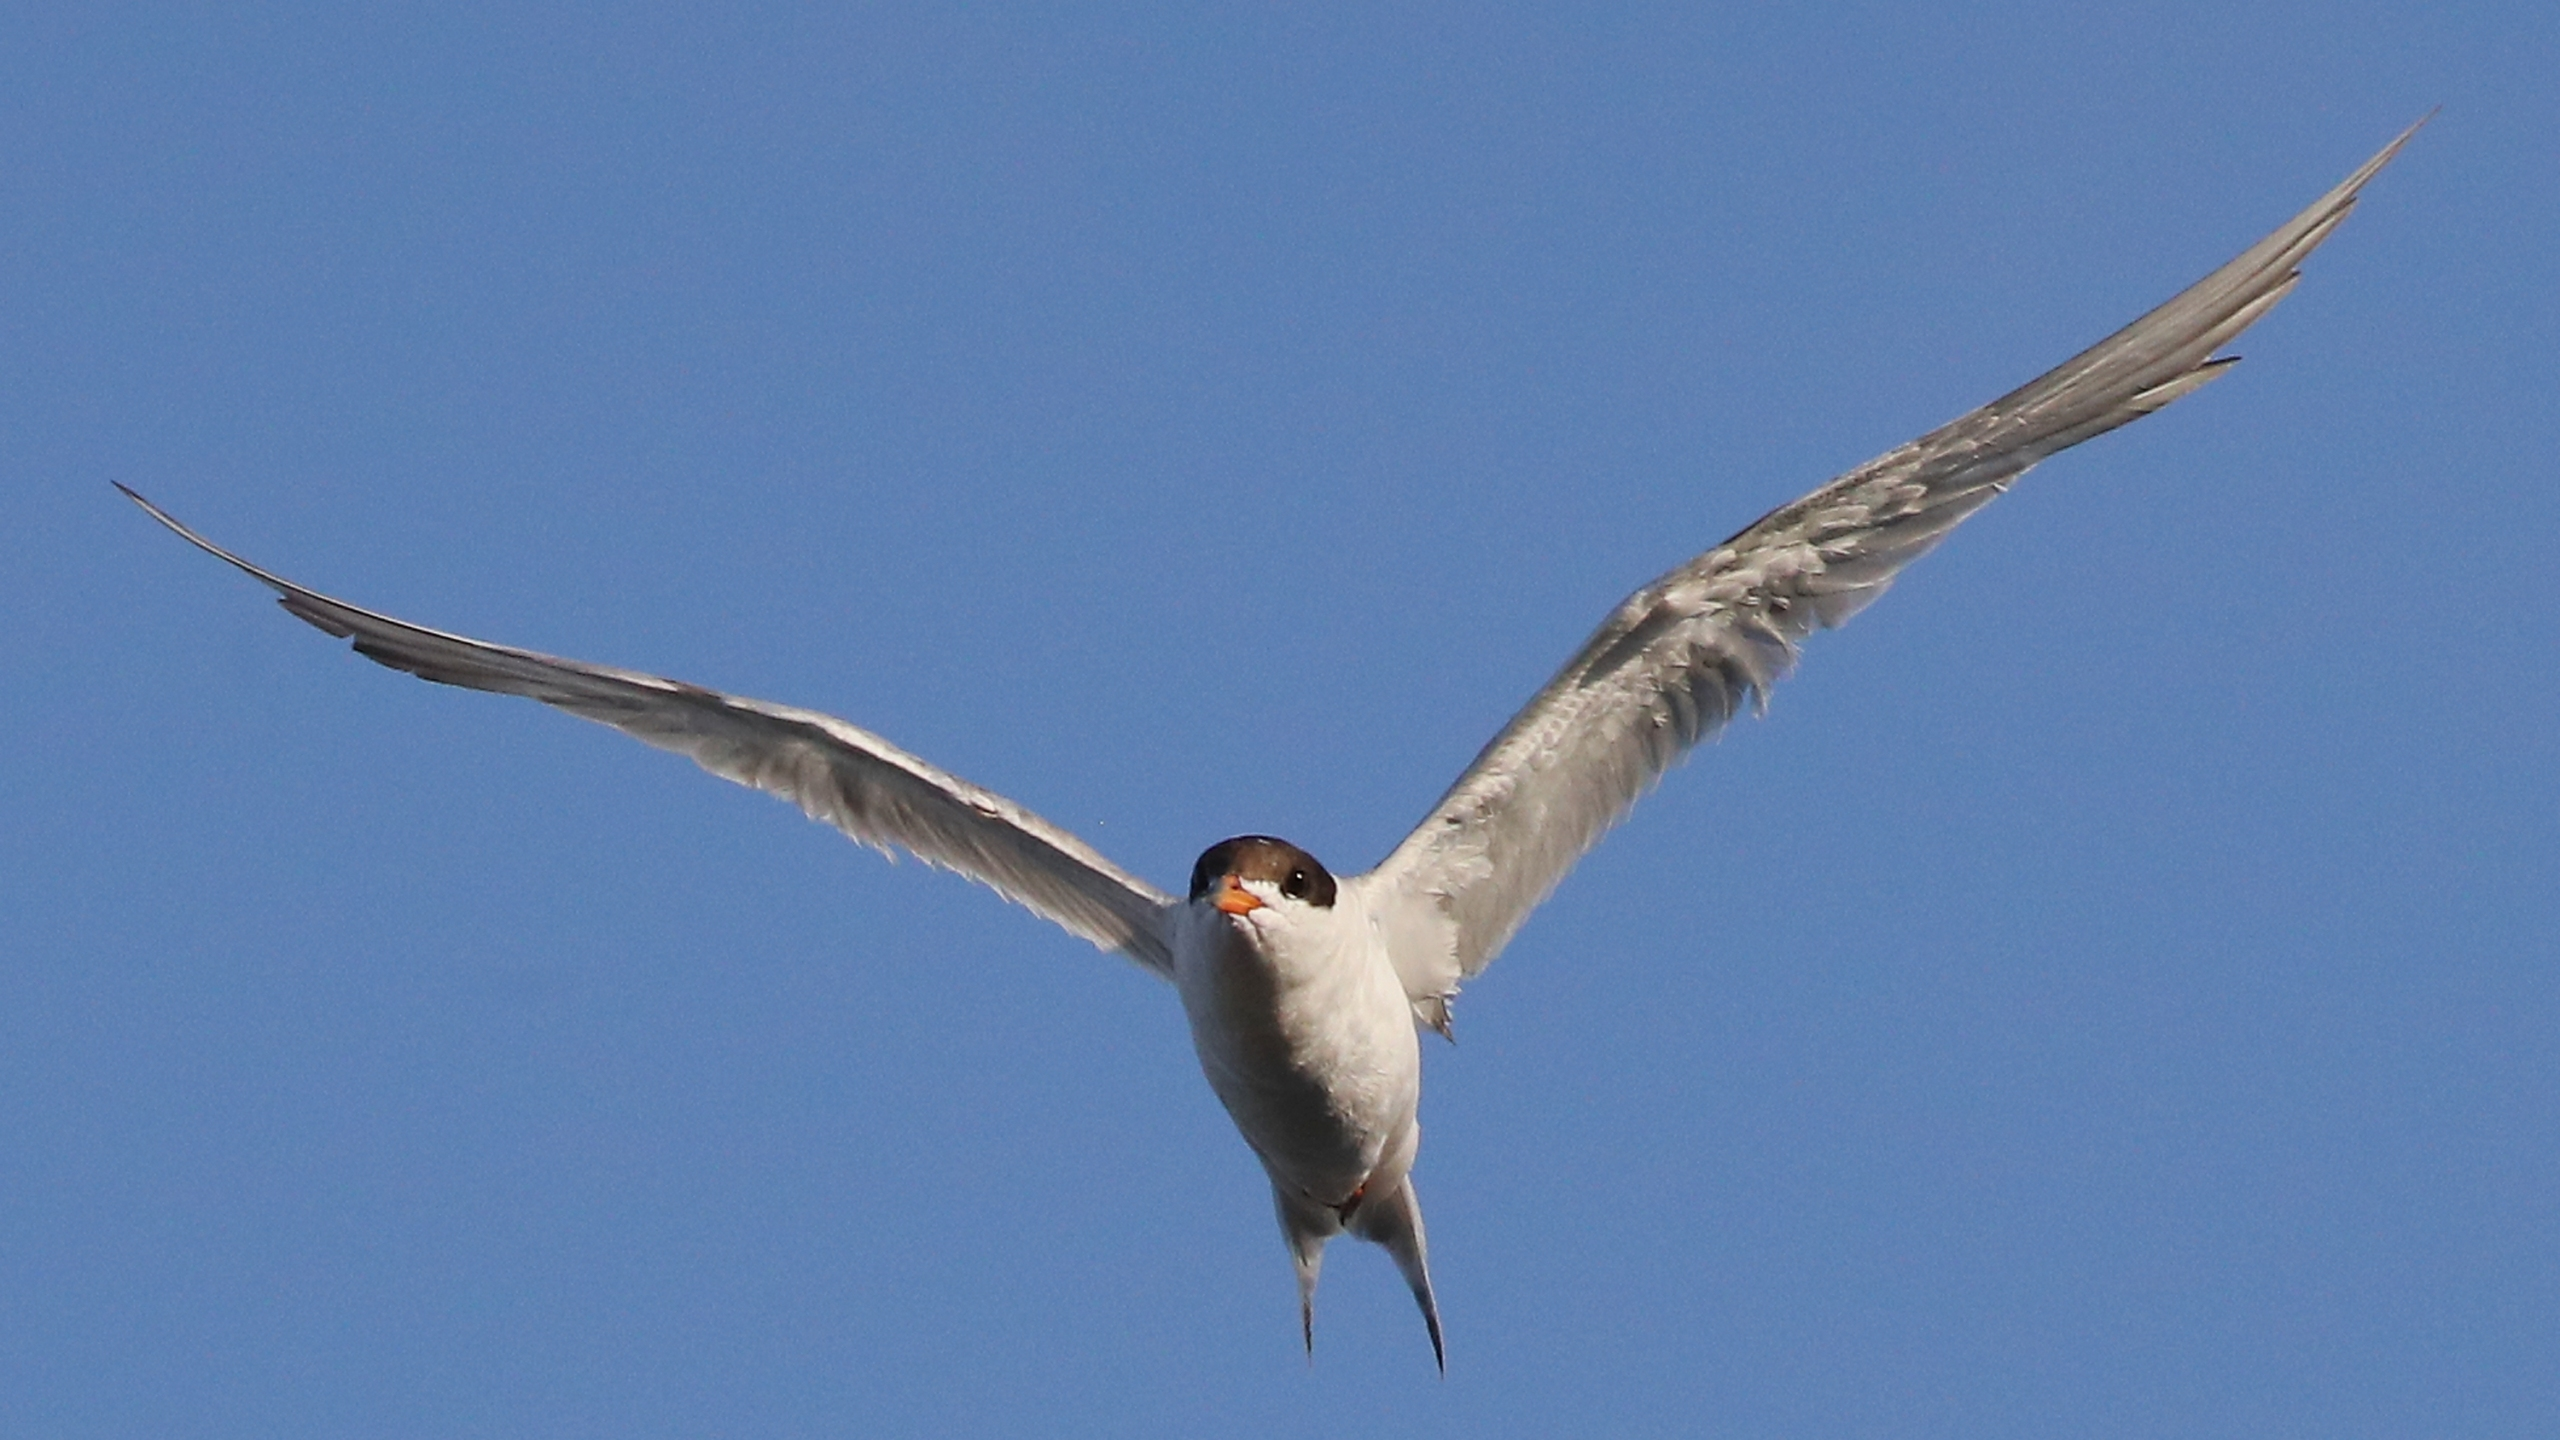 A least tern flies over Mill Pond on Aug. 2, 2018 in Centerport, New York. (Credit: Bruce Bennett/Getty Images)